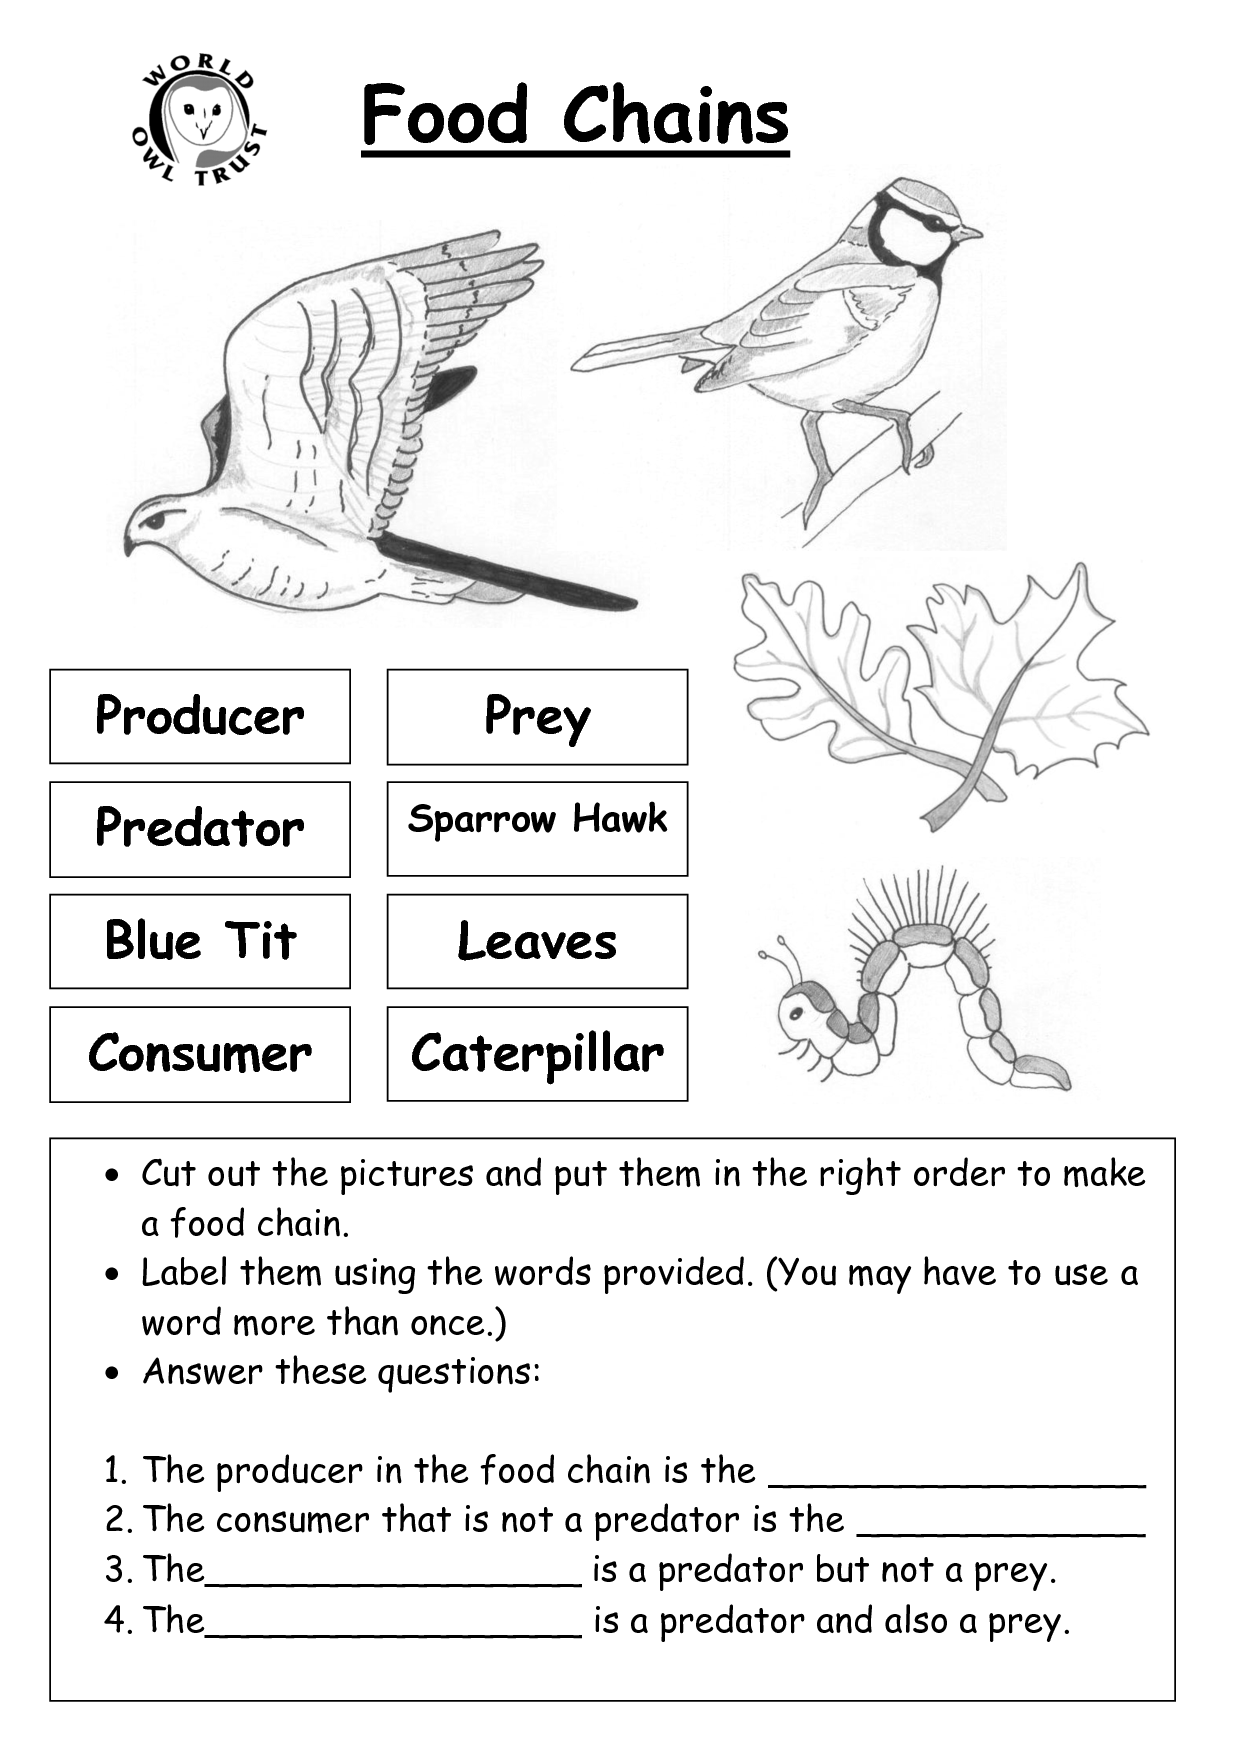 Food Chain 4th Grade Worksheet 6th Grade